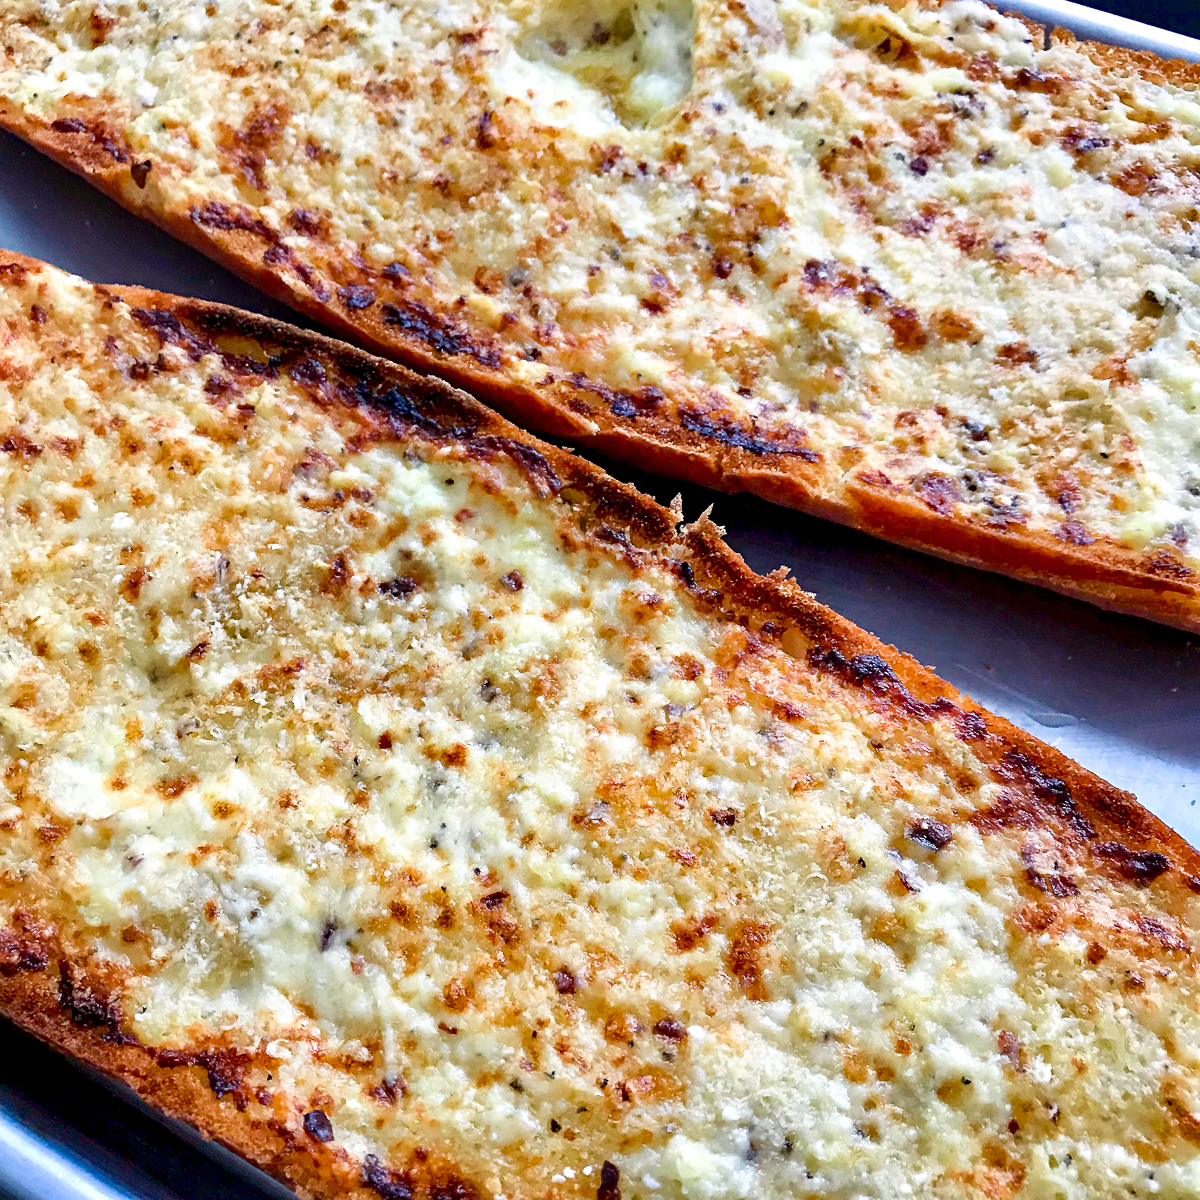 Diagonal closeup of creamy garlic bread.